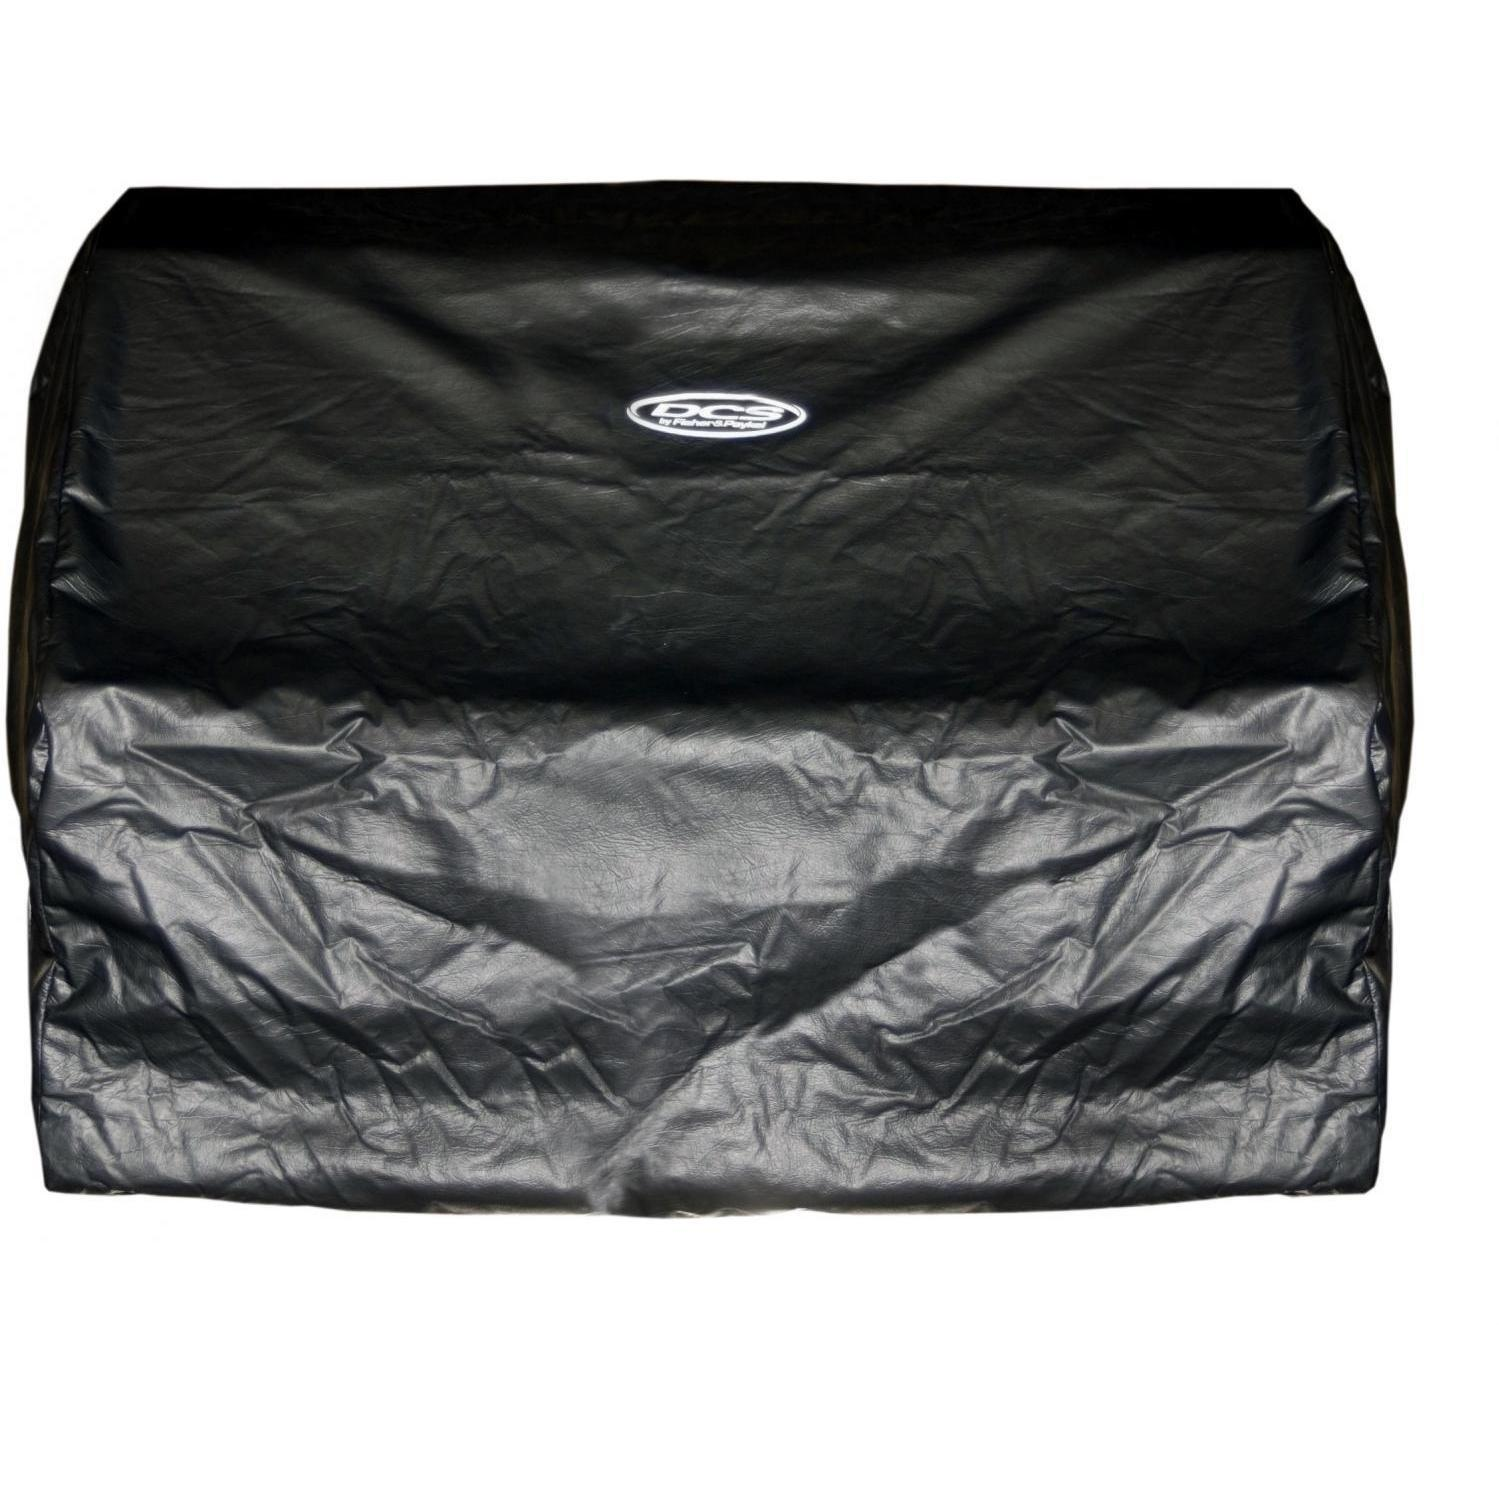 Dcs Outdoor Bga36vcbia 36 Inch Vinyl Grill Cover For Built